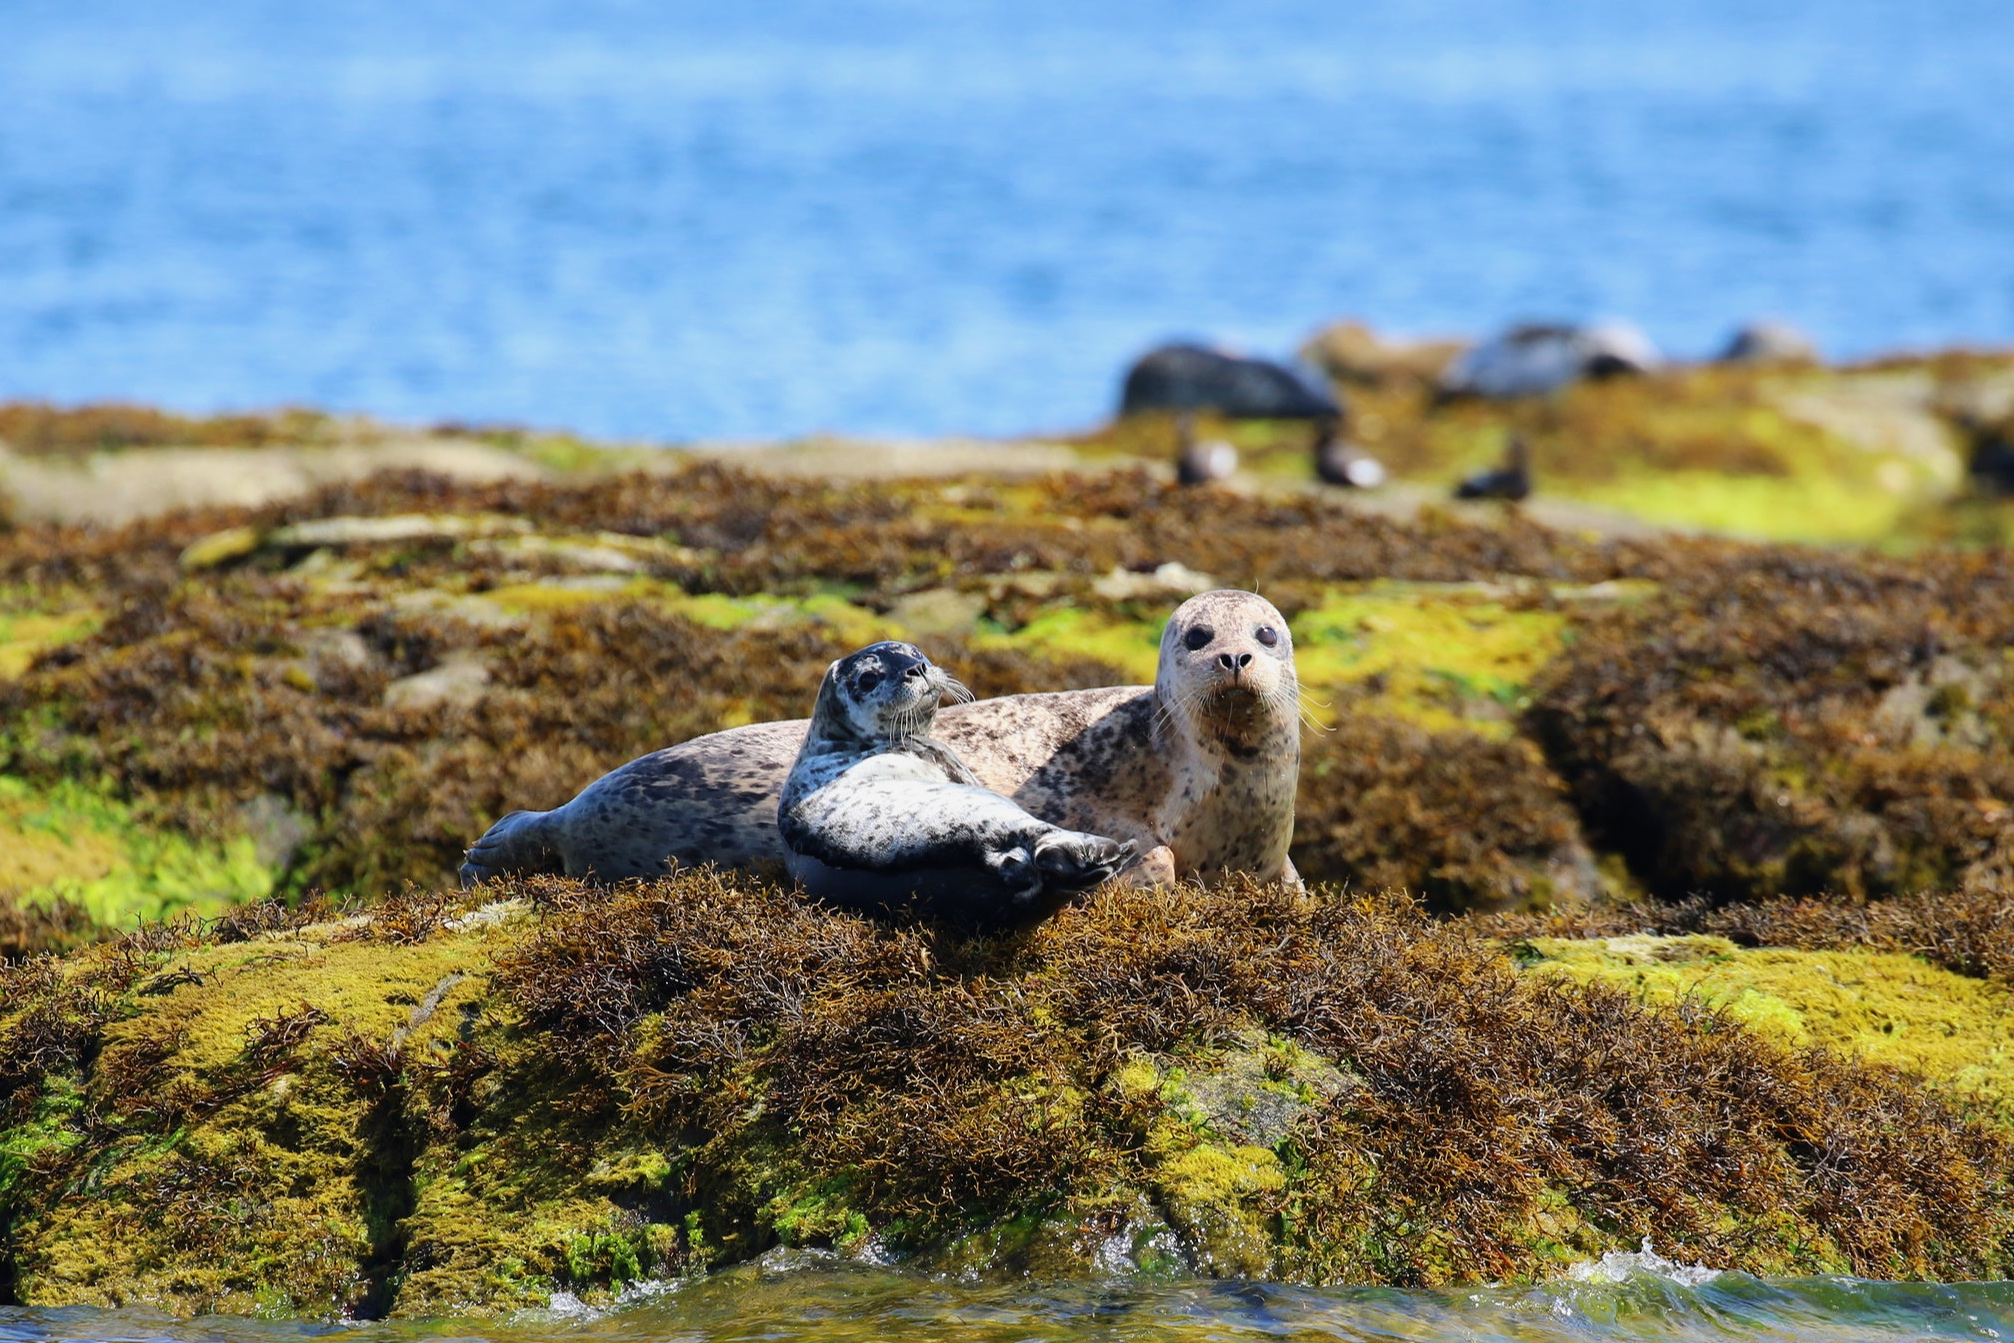 Harbour seal mom hanging out with her pup! Photo by Rebeka Pirker (10.30)